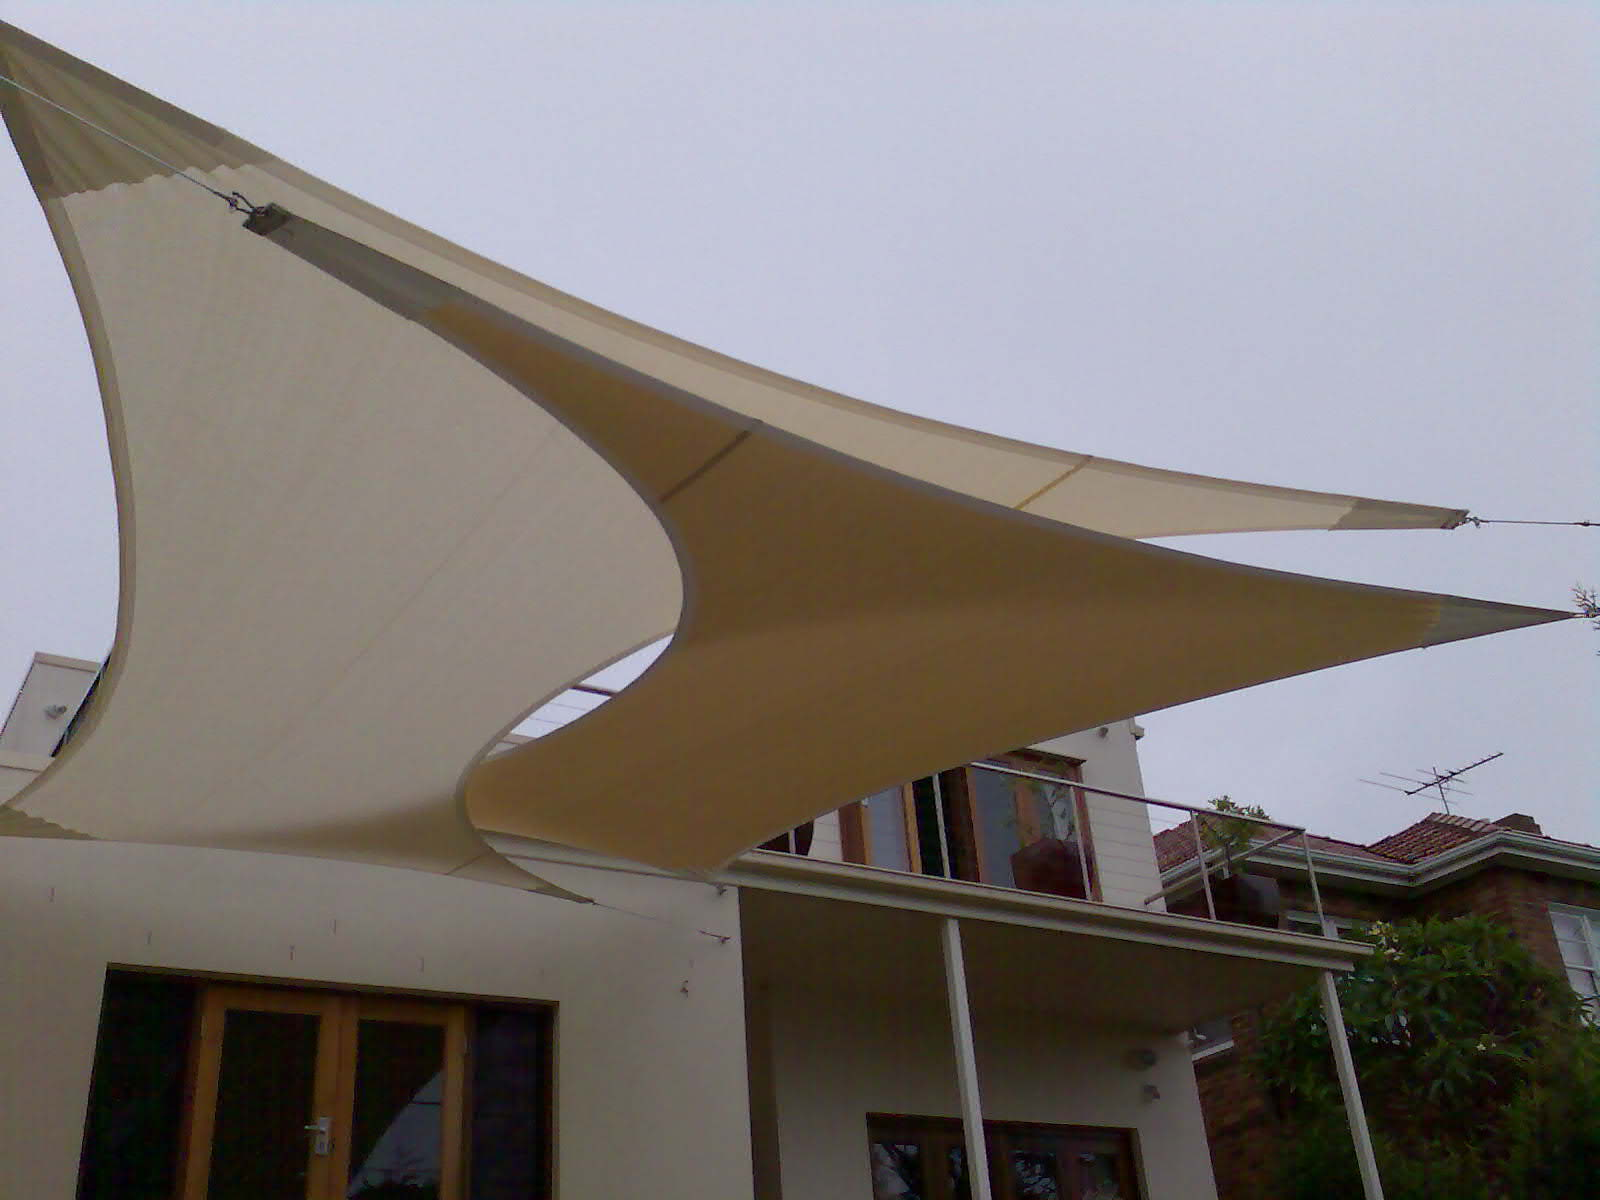 Sun awnings and canopies